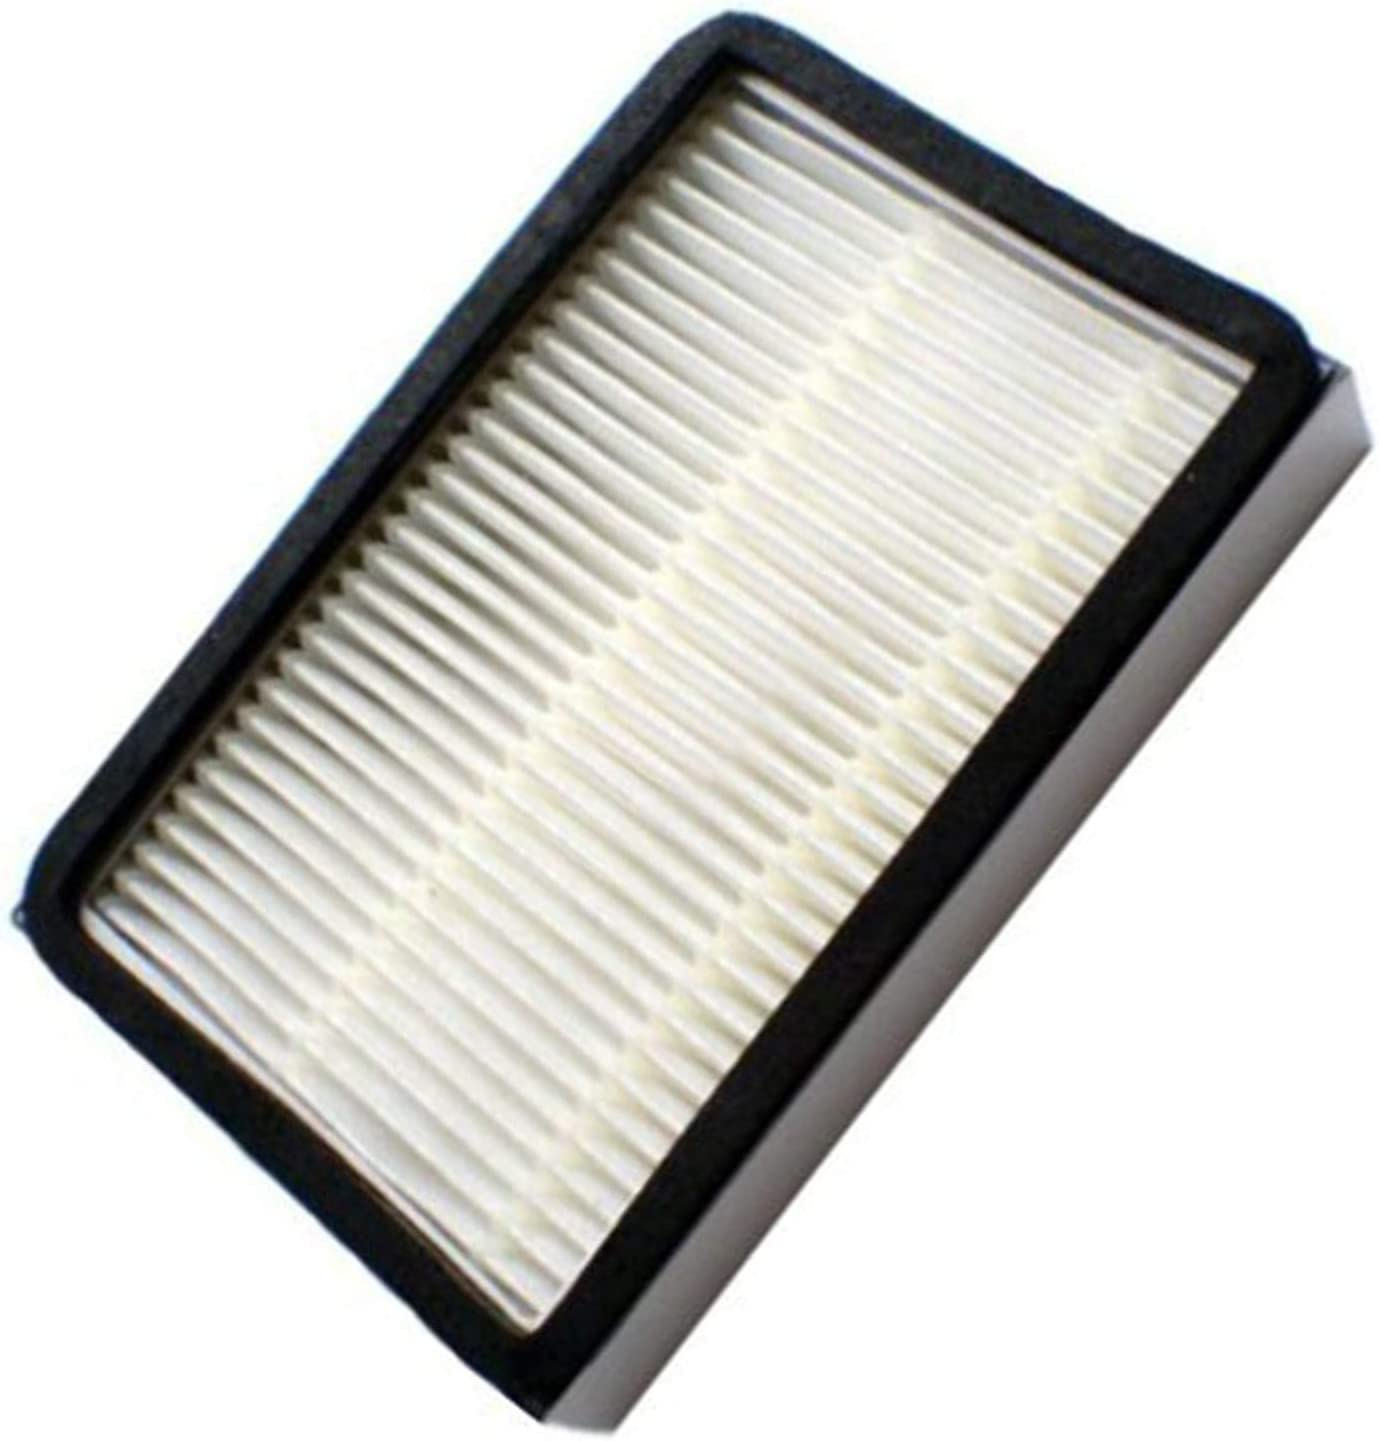 HQRP Exhaust HEPA Filter Compatible with Sears Kenmore EF-1 EF1 86889 20-86889 KC38KCEN1000 53295 8175062 WPL4370417 2086889 40324 Replacement Plus Coaster